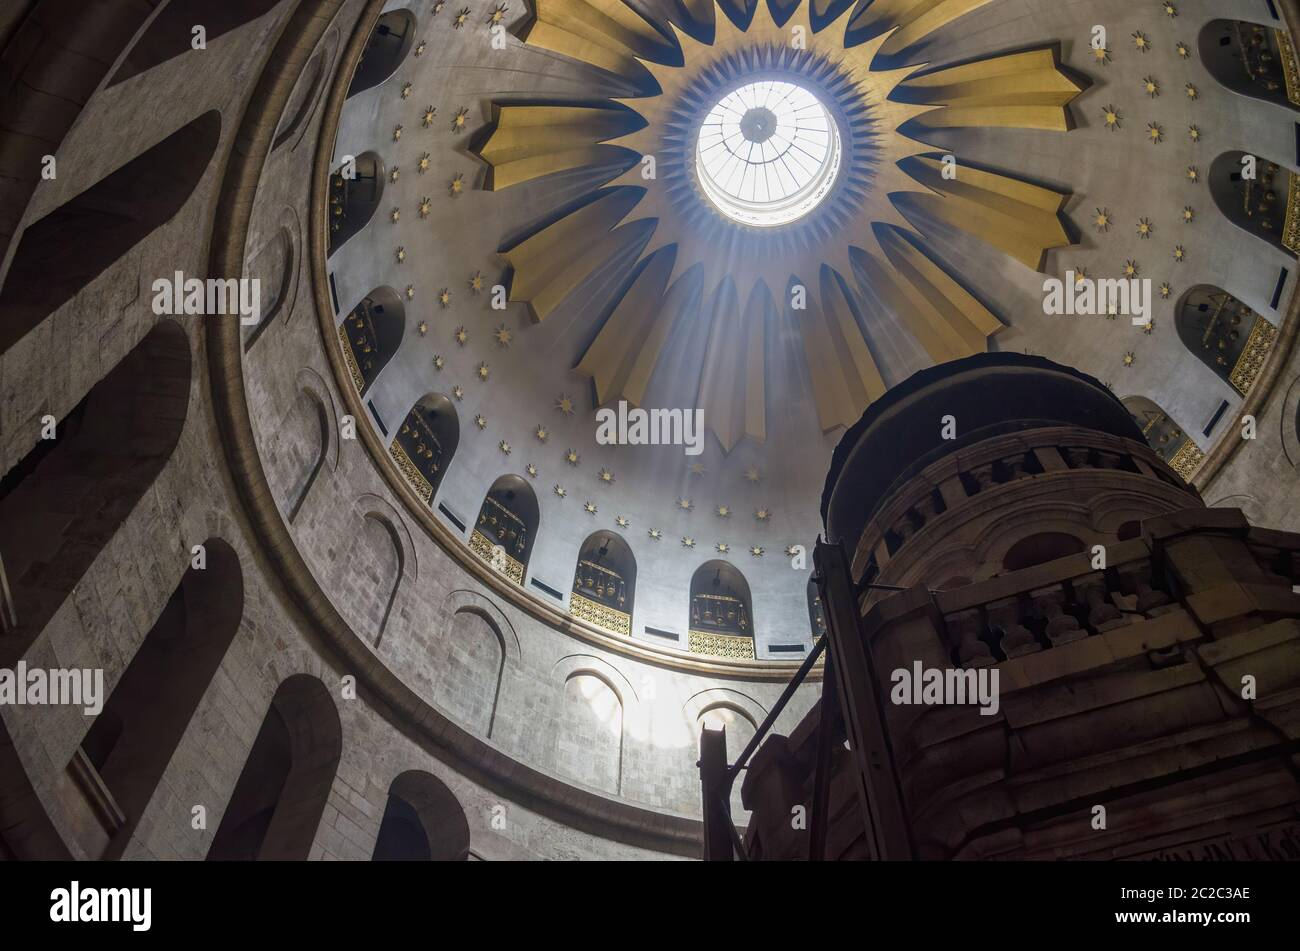 Holy Tomb, Jerusalim 04.30.2014 Interior of historic building with holy tomb and ornate dome decorated with golden elements located in Jerusalem Stock Photo